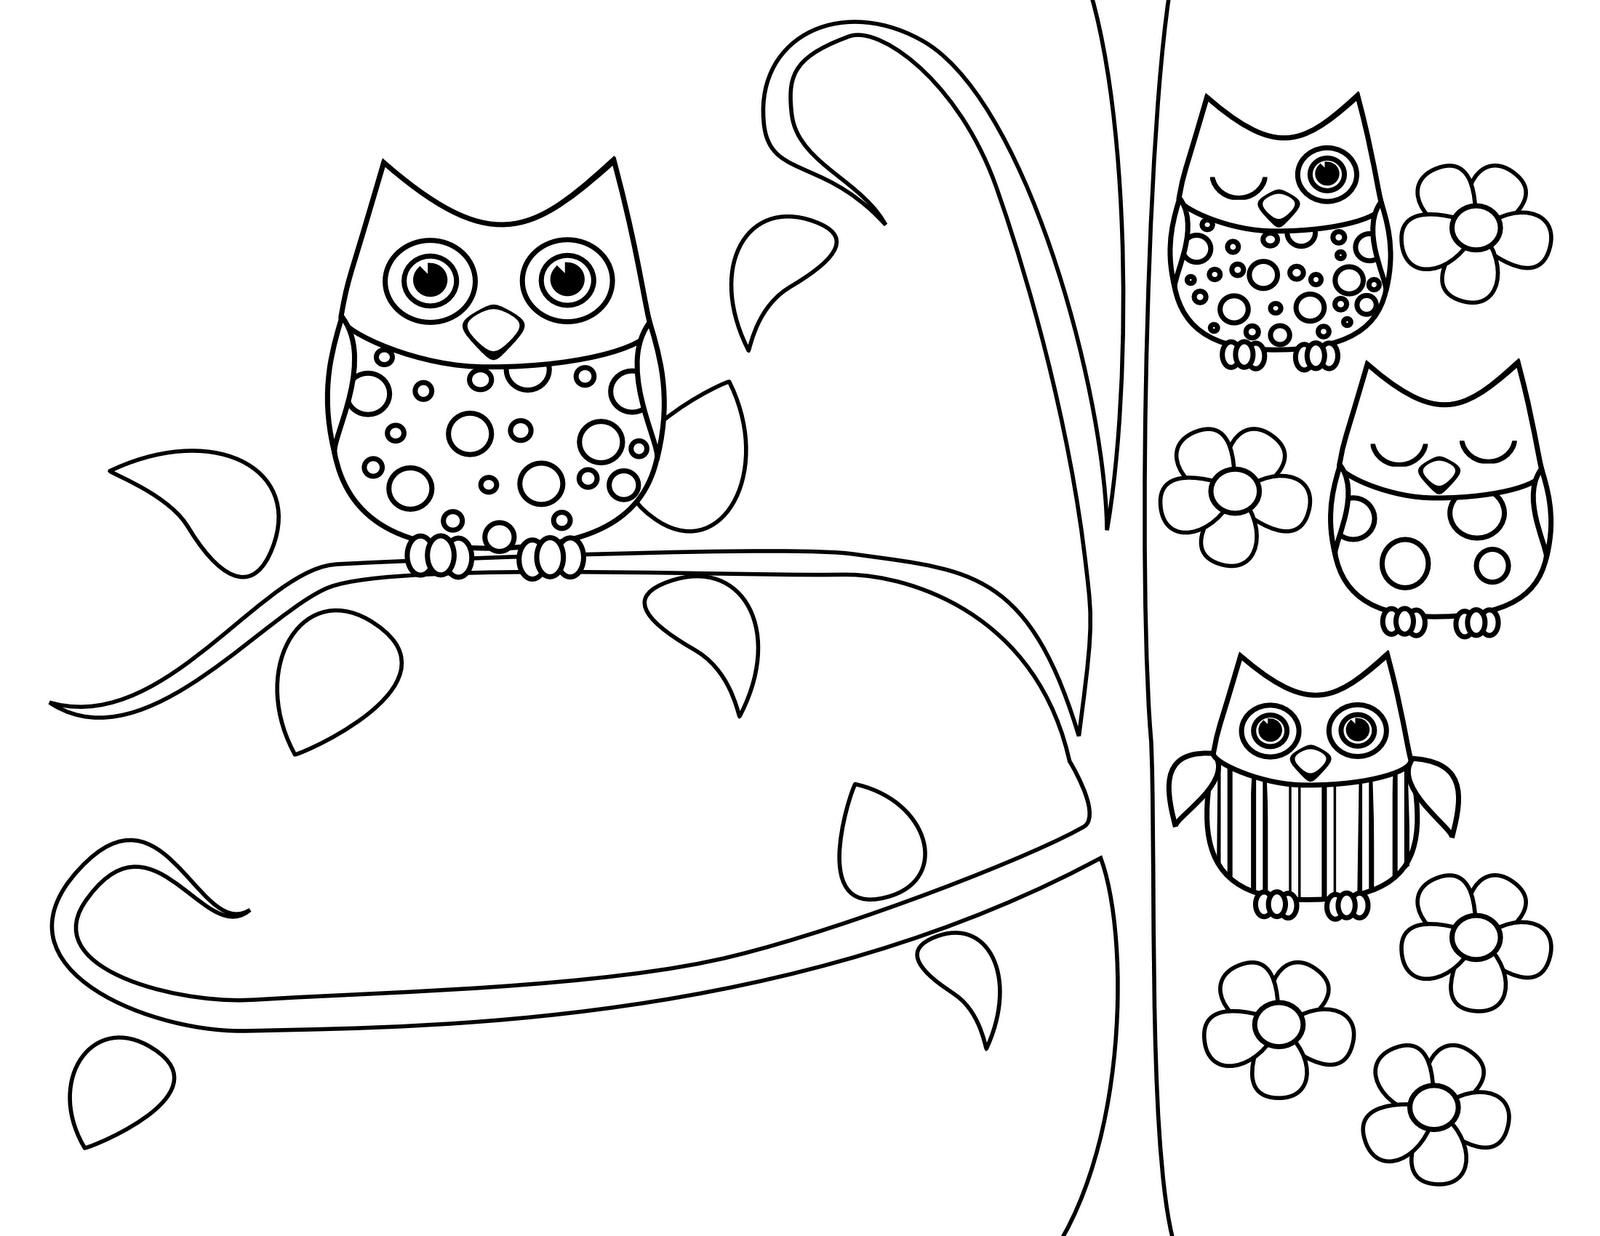 Girly Owl Coloring Pages Owl Coloring Pages Animal Coloring Pages Cute Coloring Pages